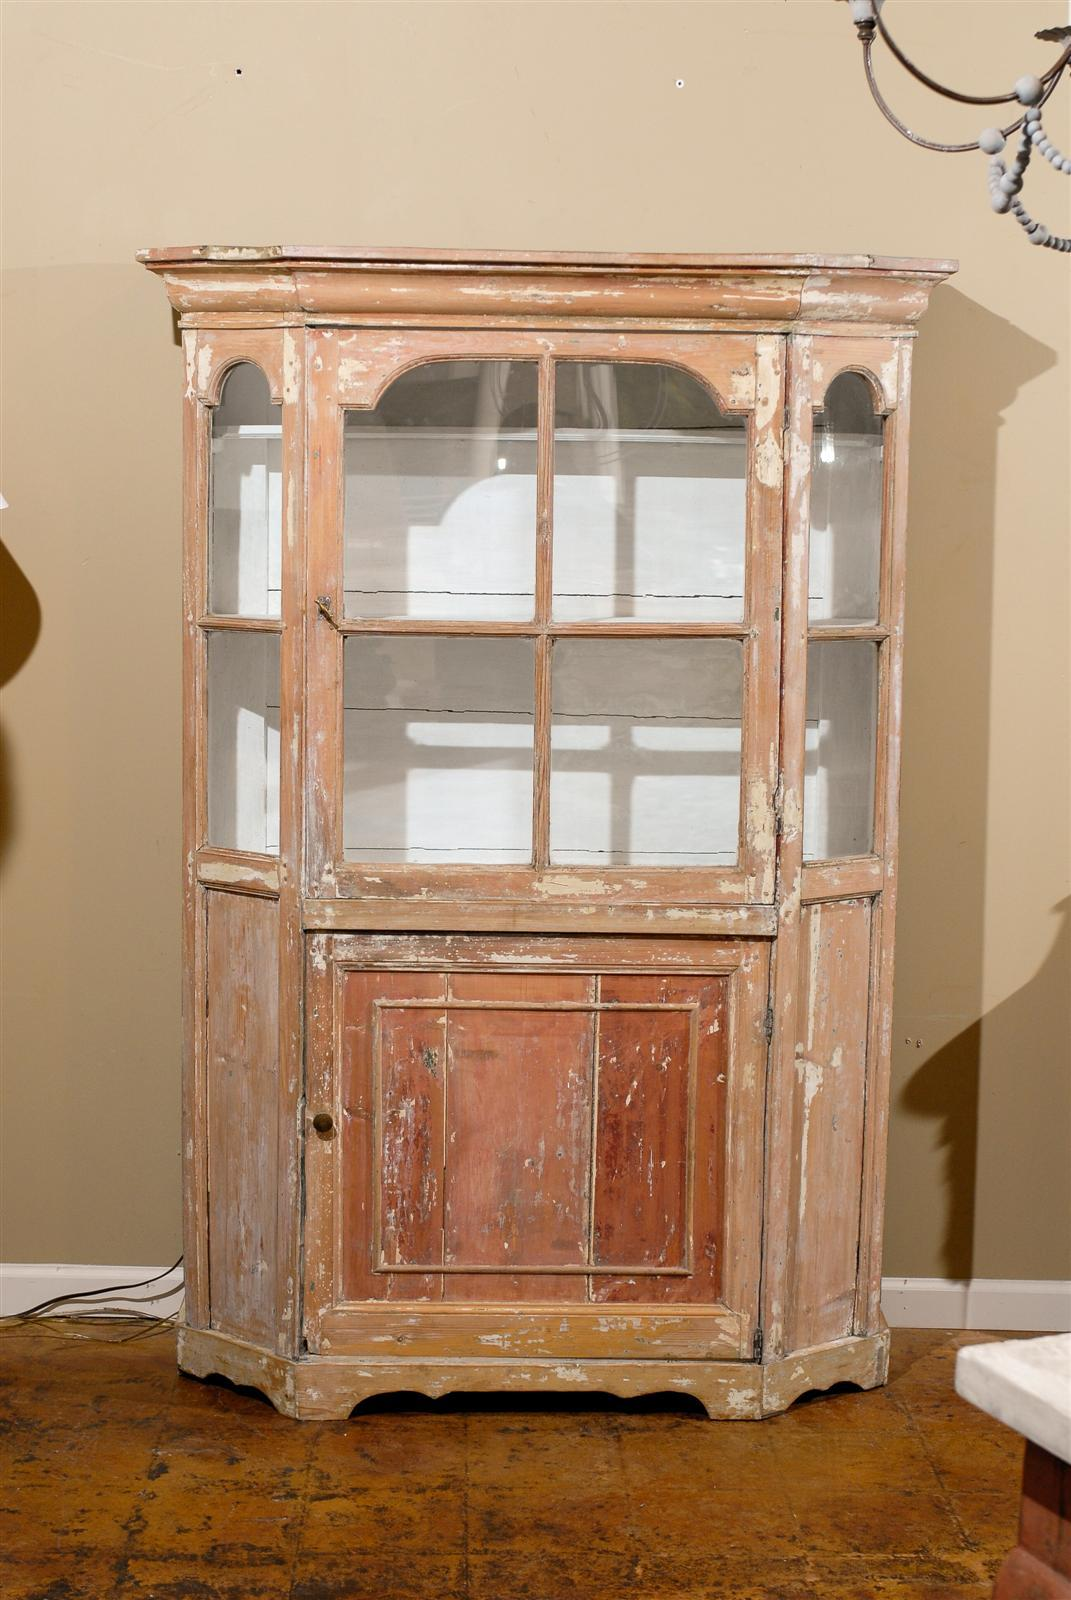 This Dutch curio cabinet from the mid-19th century features a cornice over two pairs of doors placed above each other. The piece is visually separated into two sections: the upper section, made of glass, is the vitrine. The central door, with its